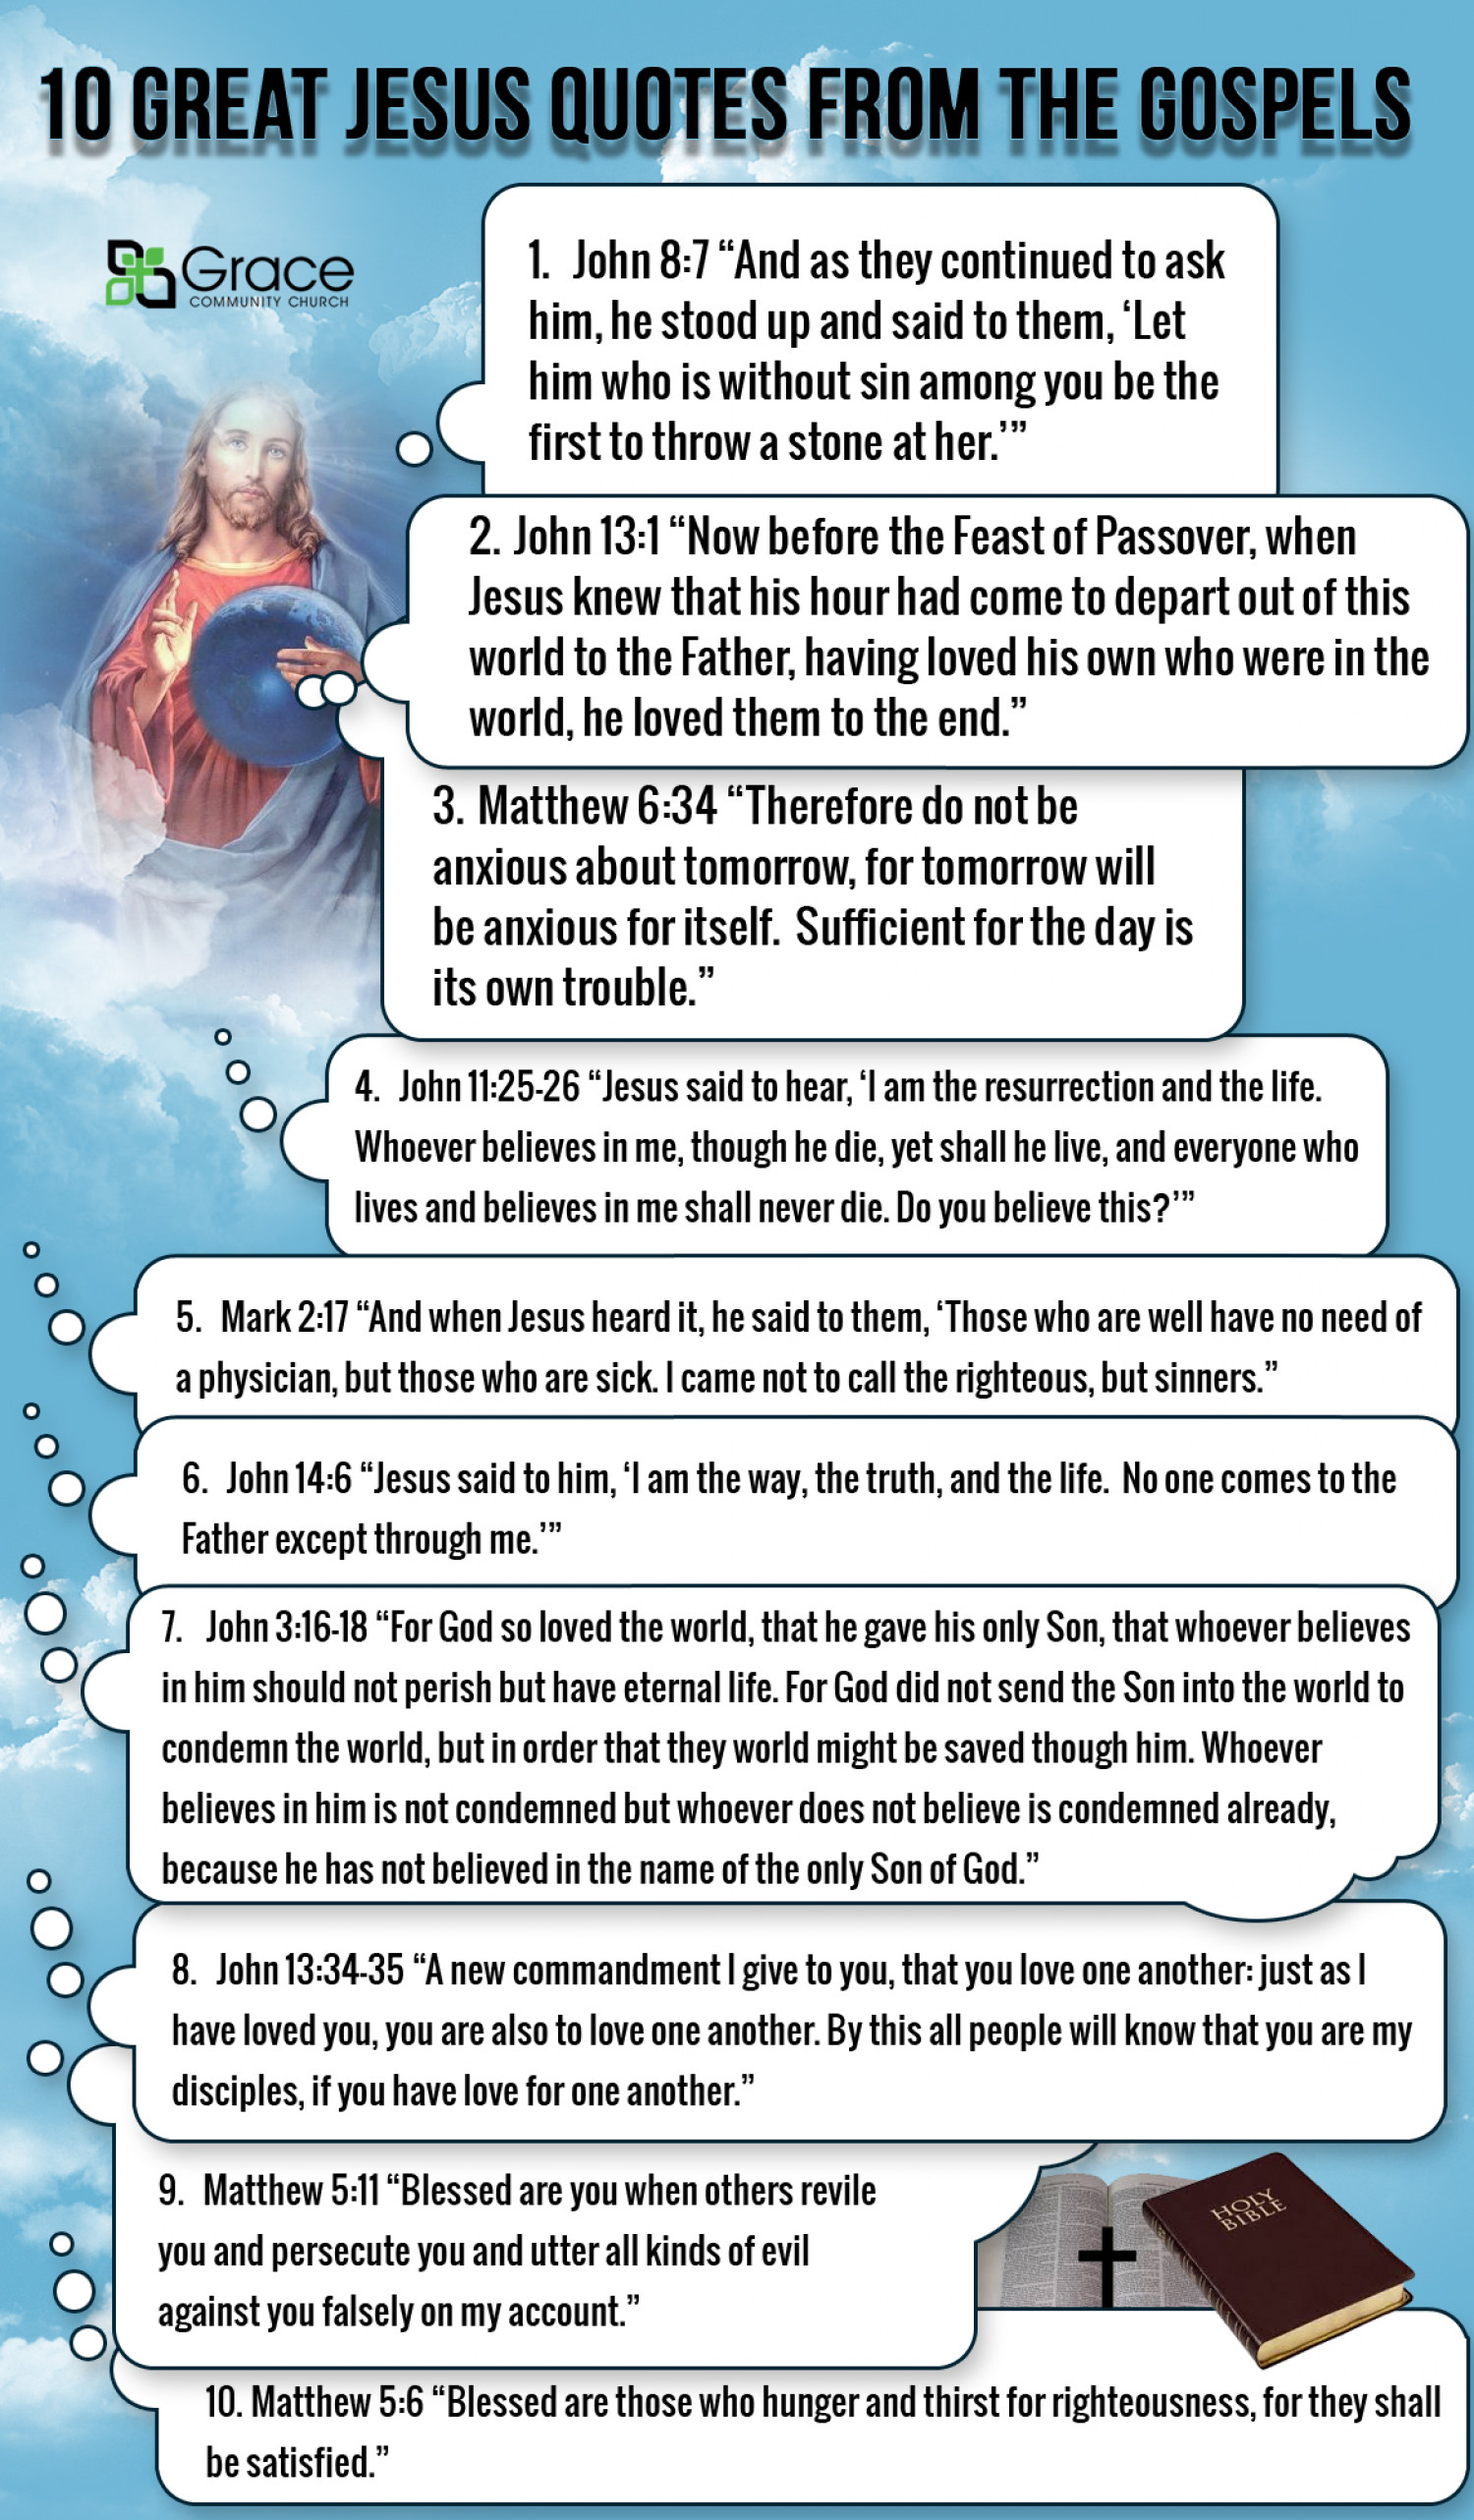 10 Great Jesus Quotes from the Gospels Infographic